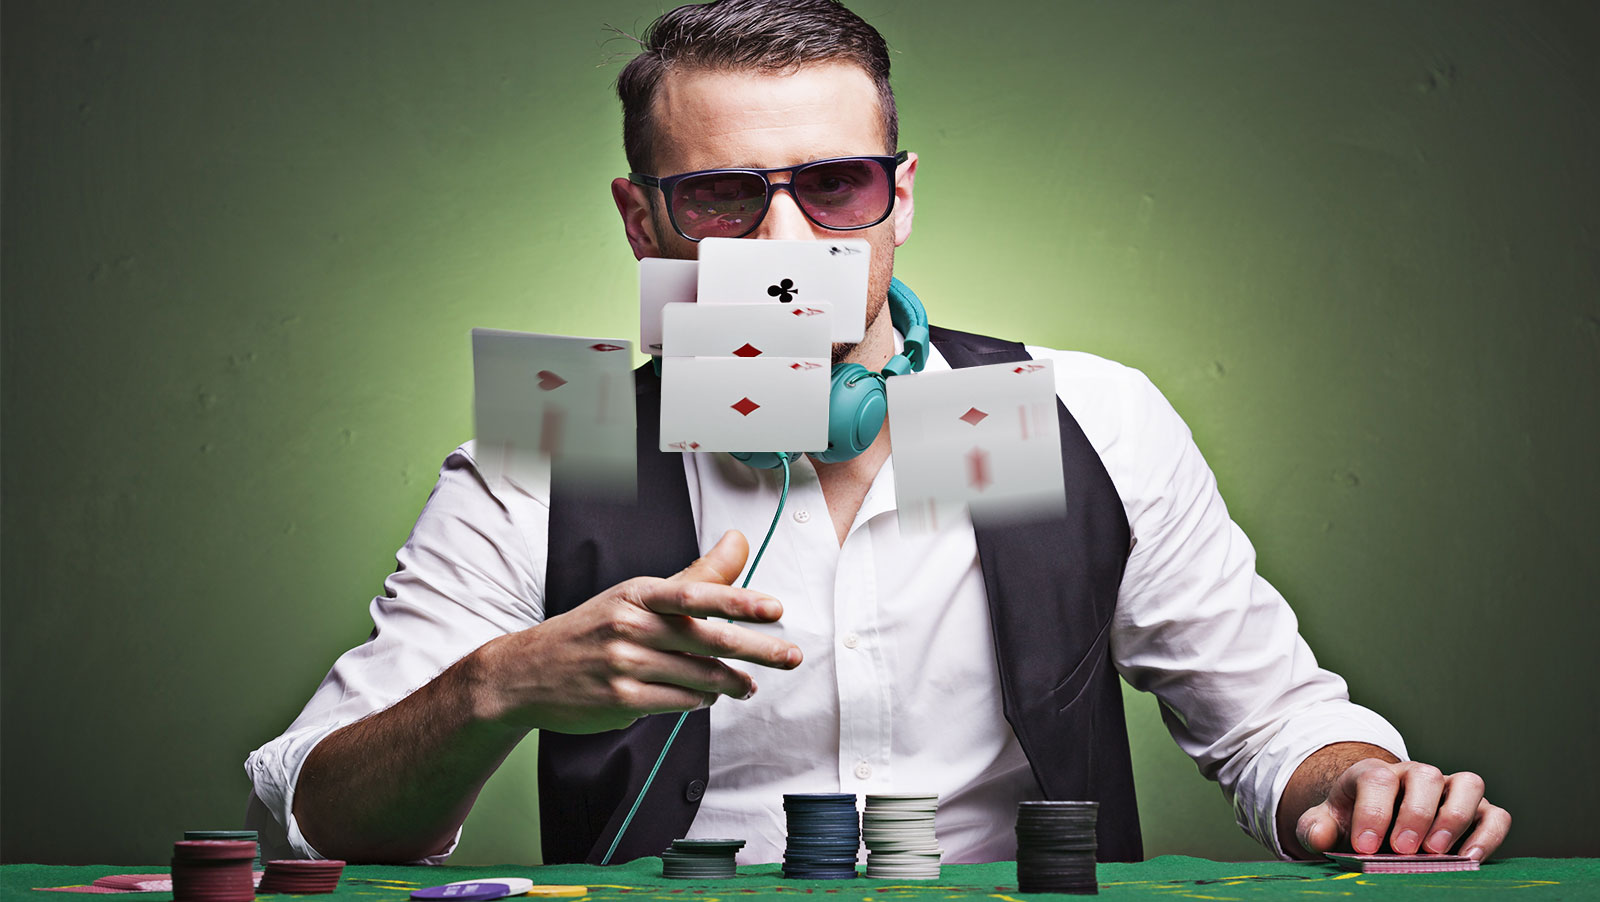 Copycat poker: Why poker players are slowing down